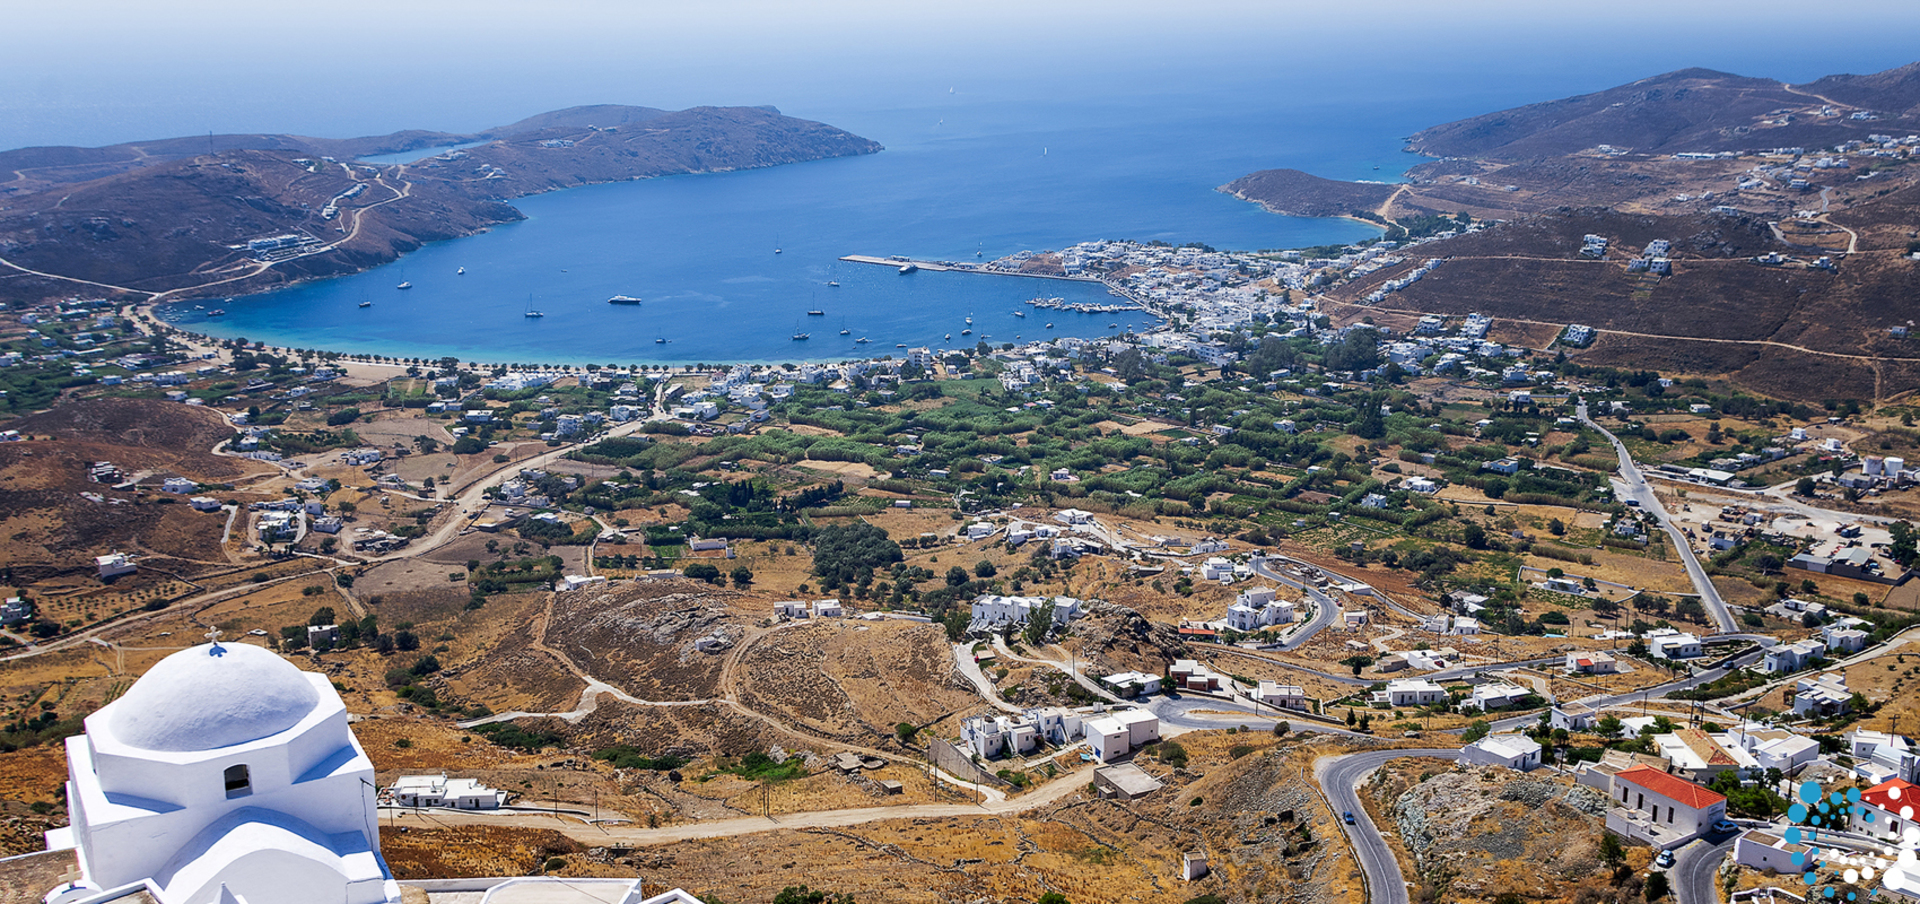 Big thumb view from top of a hill  in serifos island